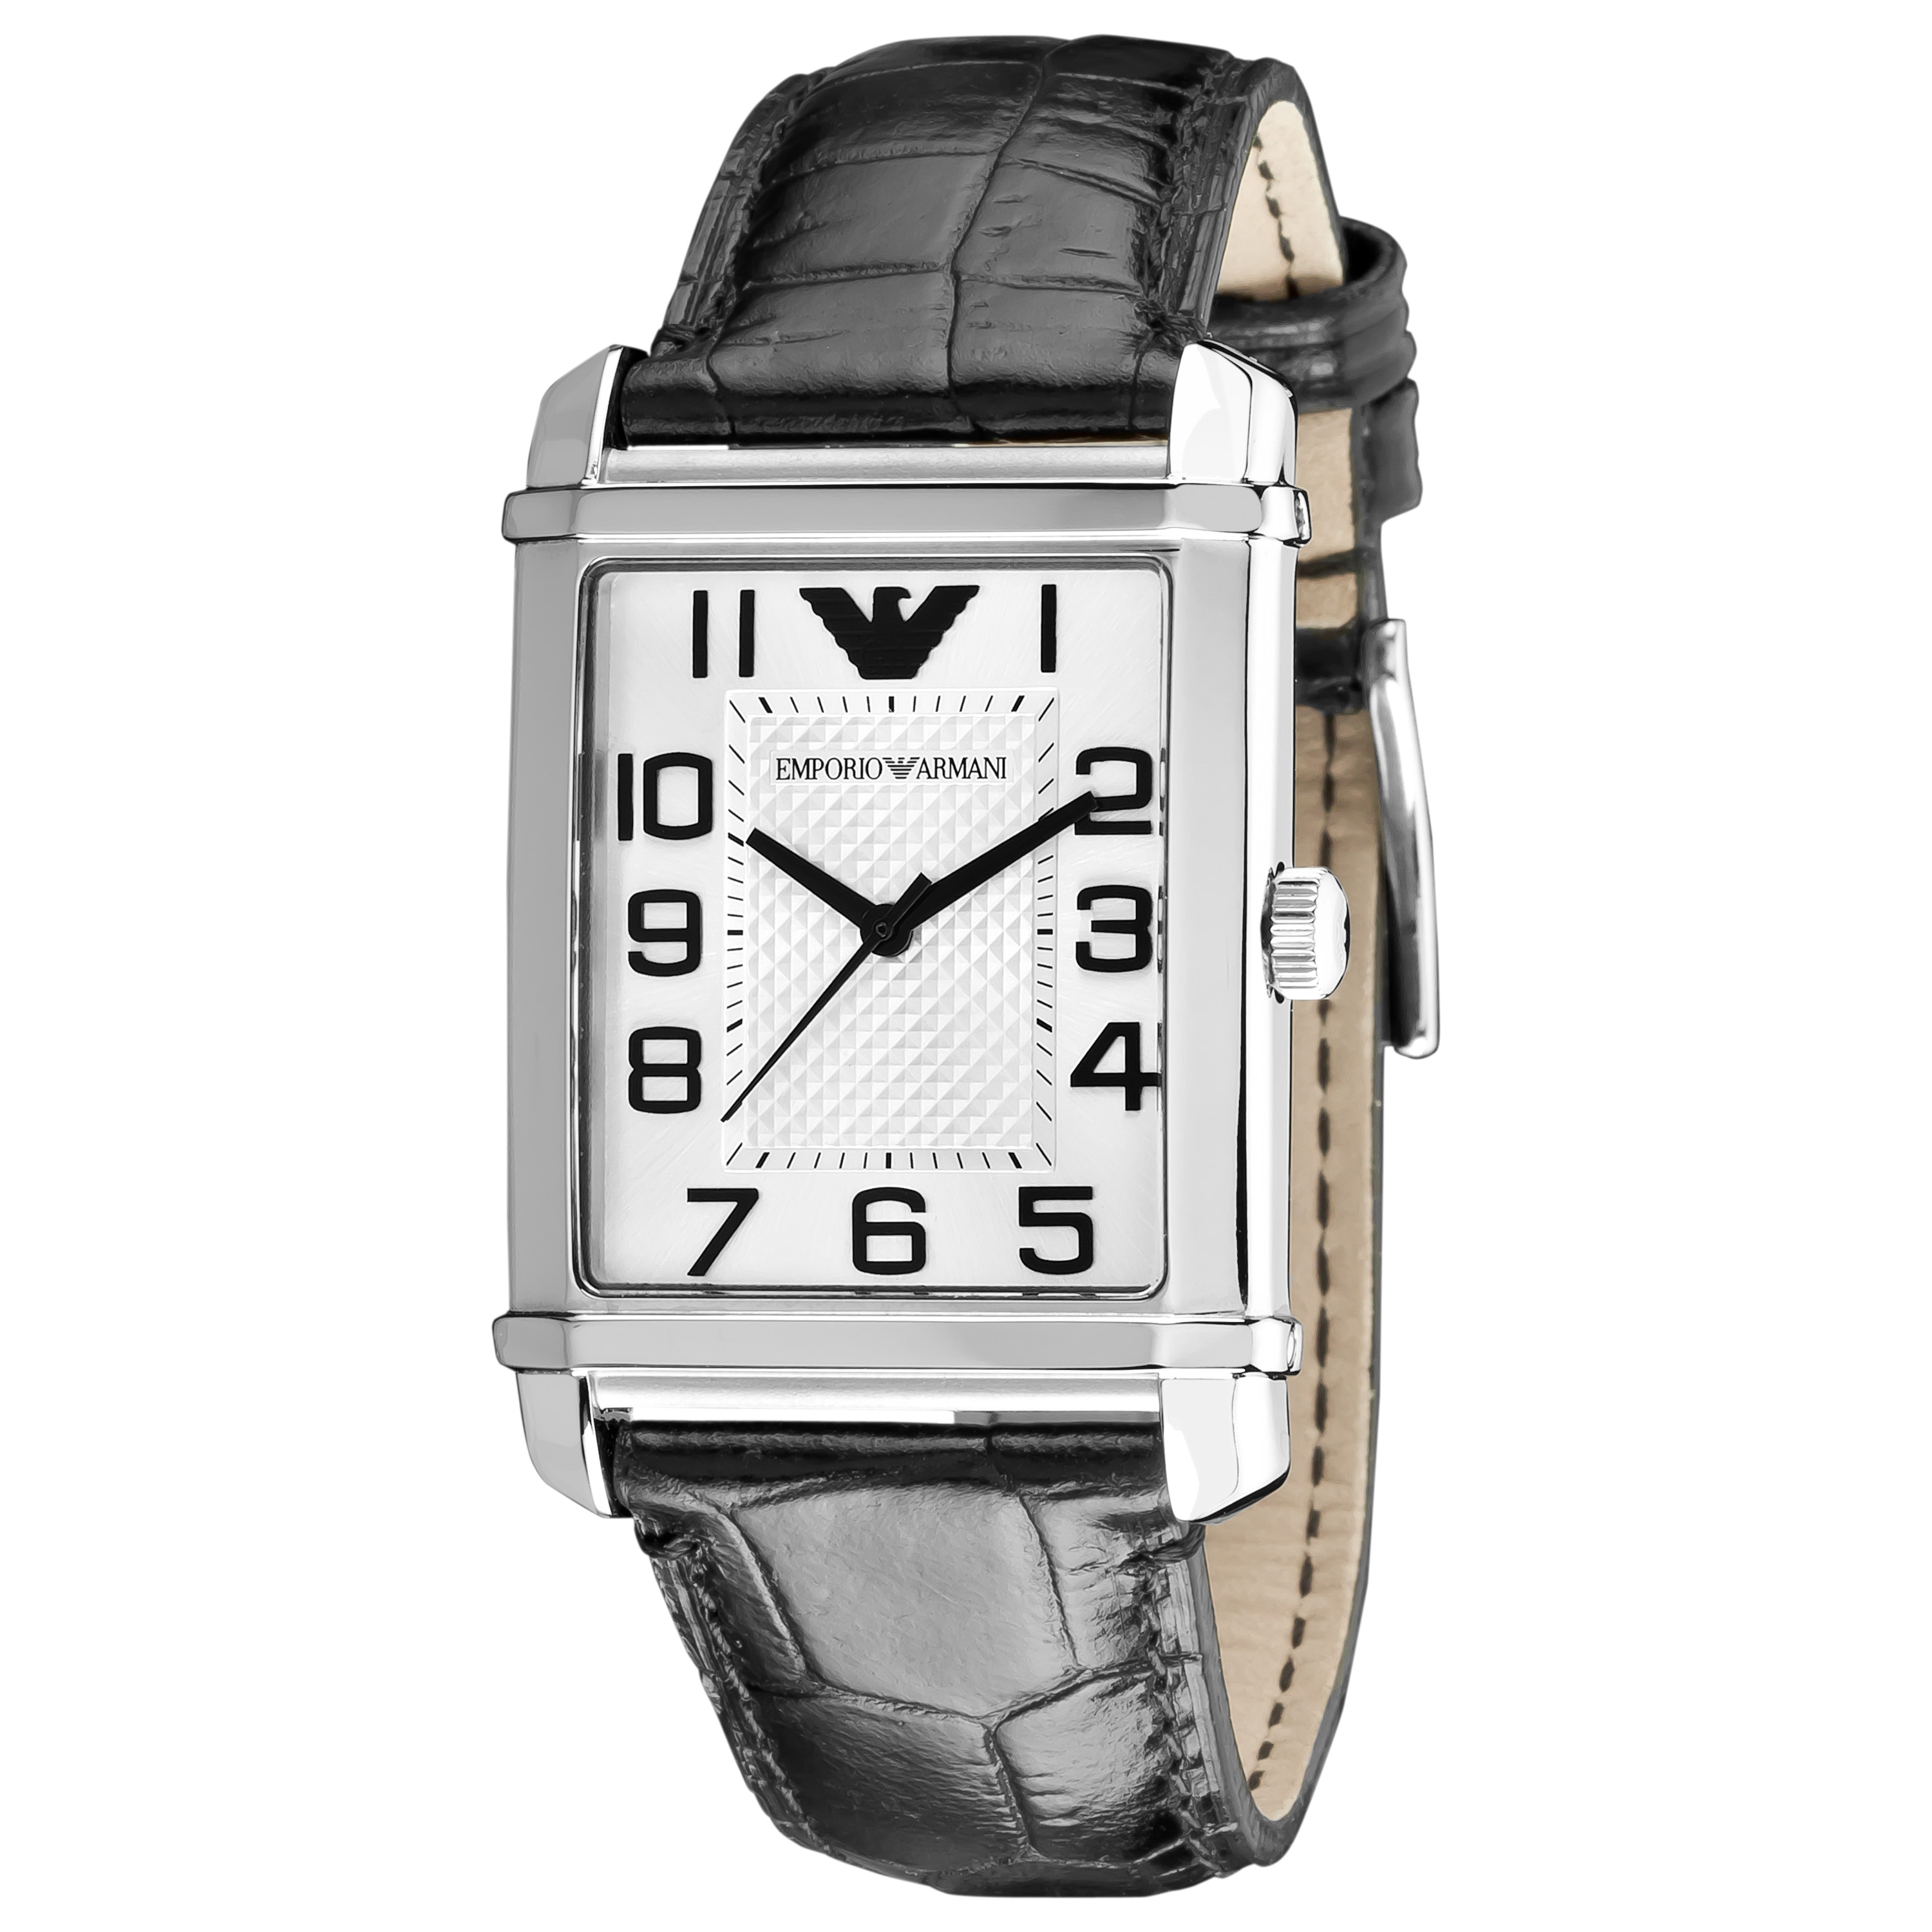 Emporio Armani Women's 'Classic' Silver Dial Watch - Thumbnail 0